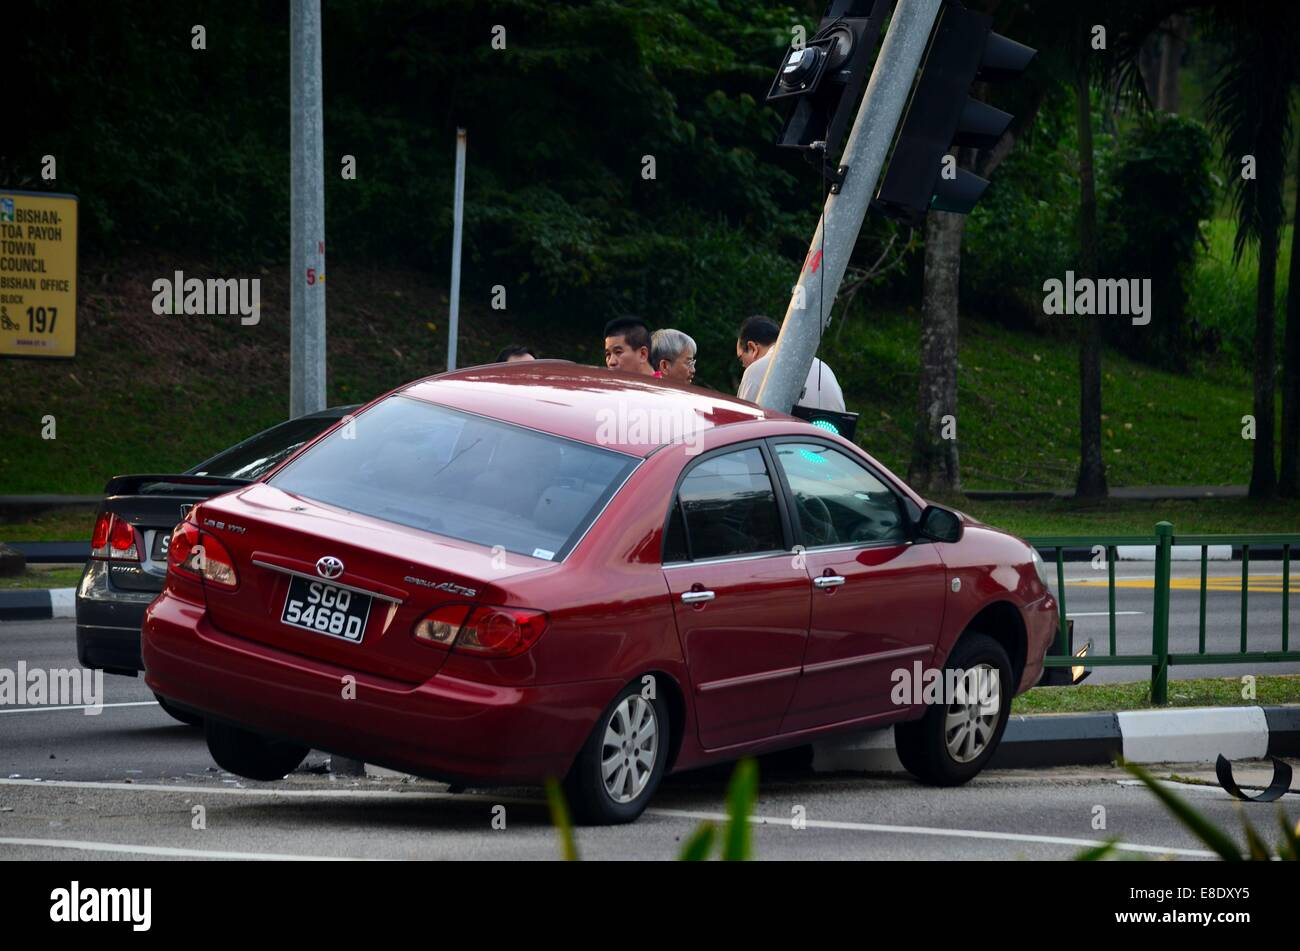 Two car accident on traffic light and divider at Braddell Road intersection Singapore - Stock Image